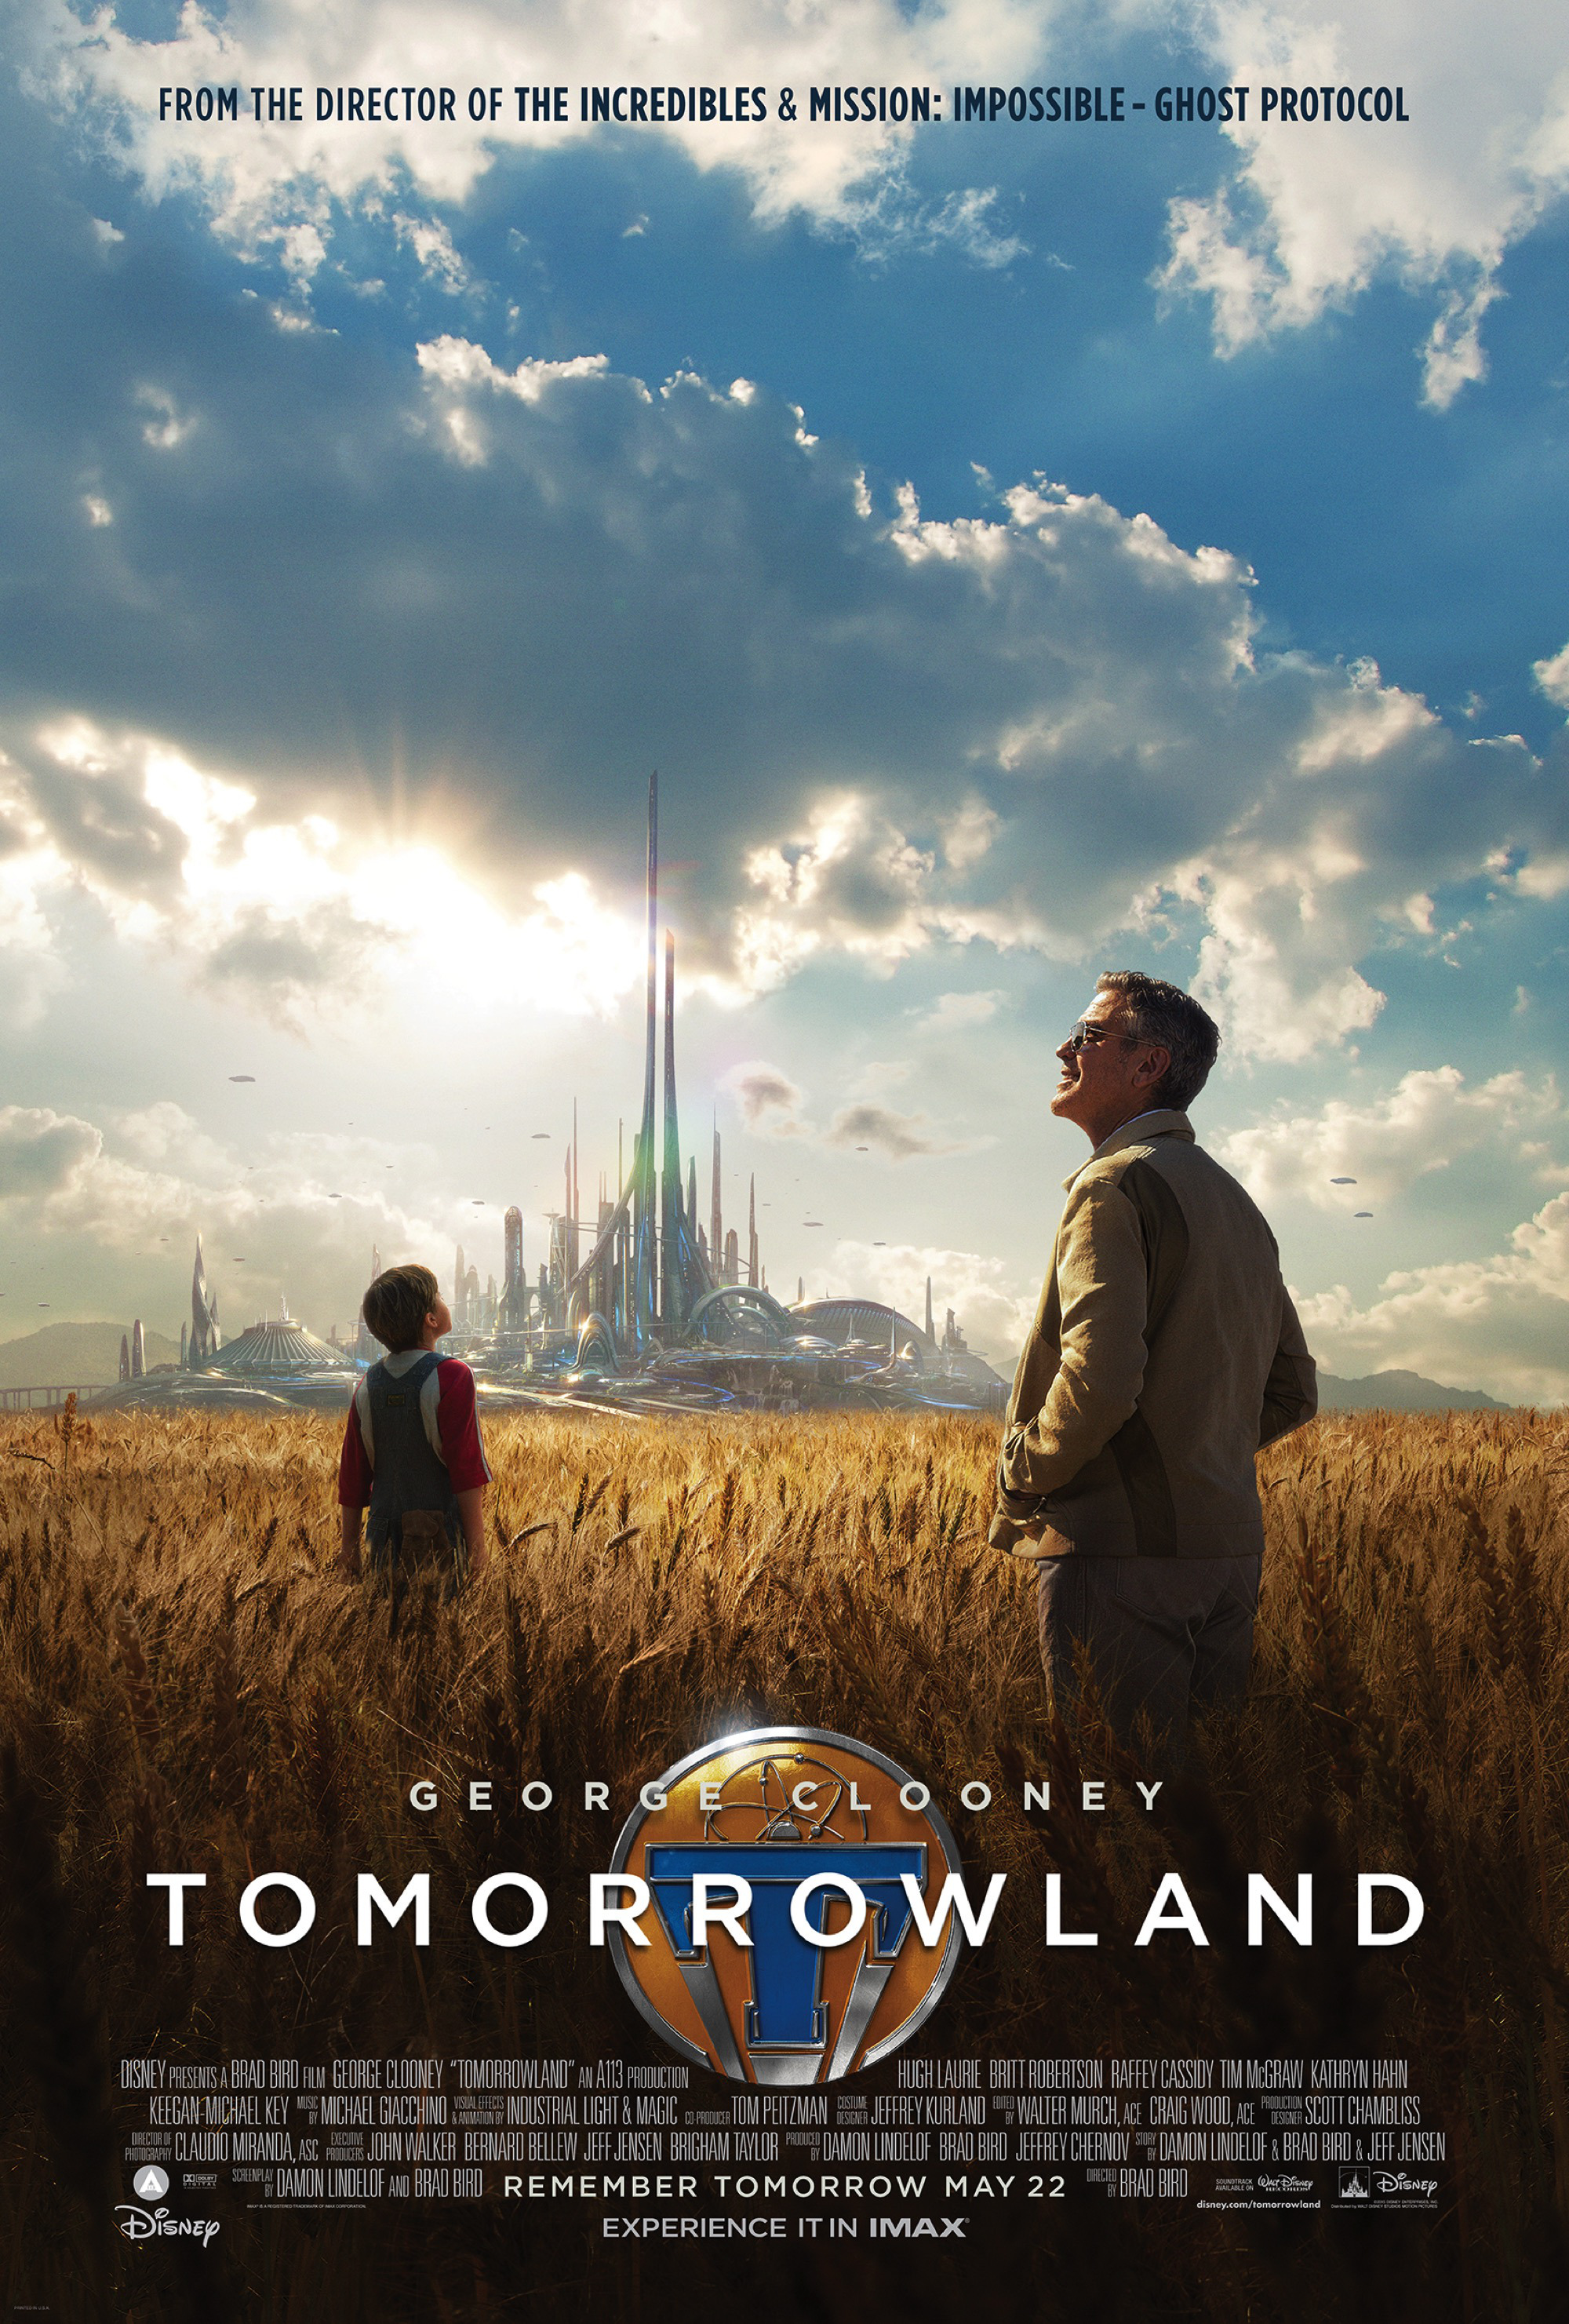 Tomorrowland film review: Disney brings the nostalgia